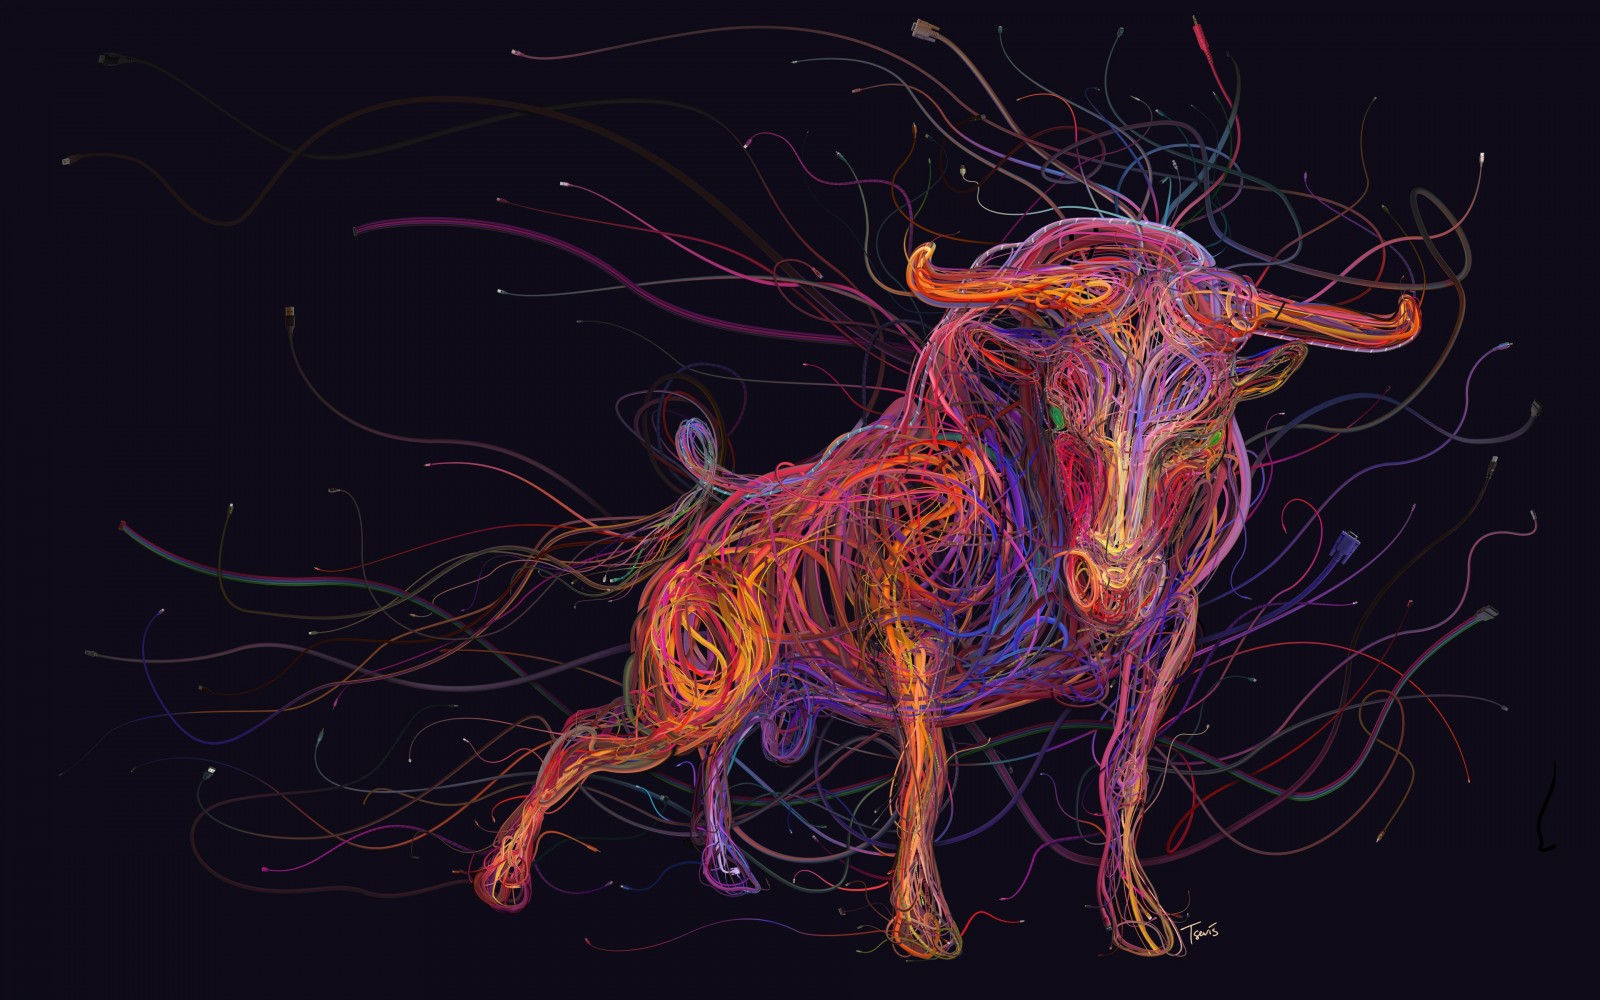 Bull_colorful_digital_art_animals_ethernet_USB_wires-40674.jpg!d.jpeg